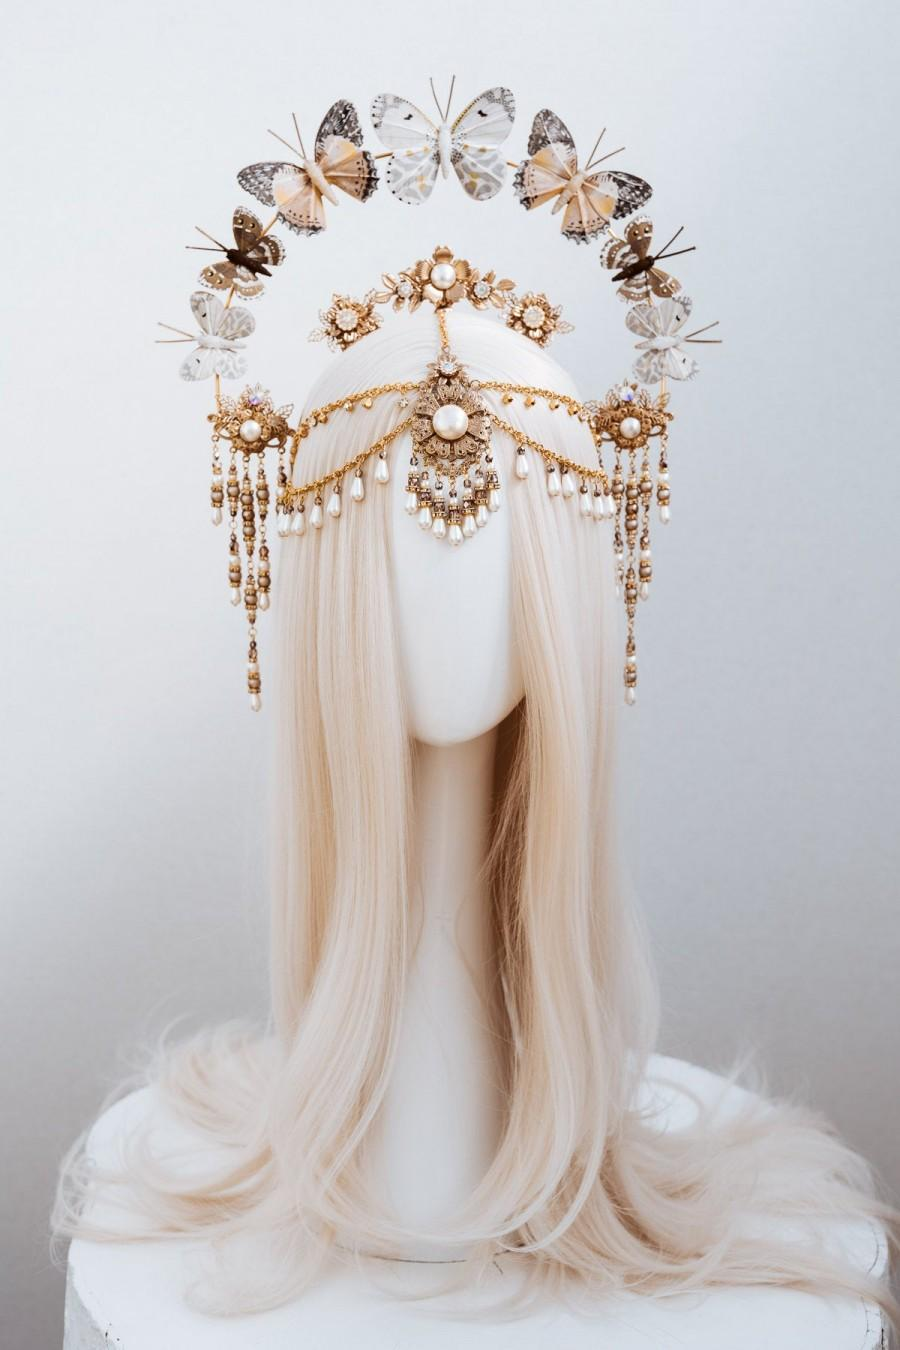 Свадьба - Butterfly crown, Gold Halo Crown, Halo, Halo Crown, Halo Headpiece, Halo Headband, Halo Headlights, Crown, Gold Halo, Headpiece,Boho Wedding